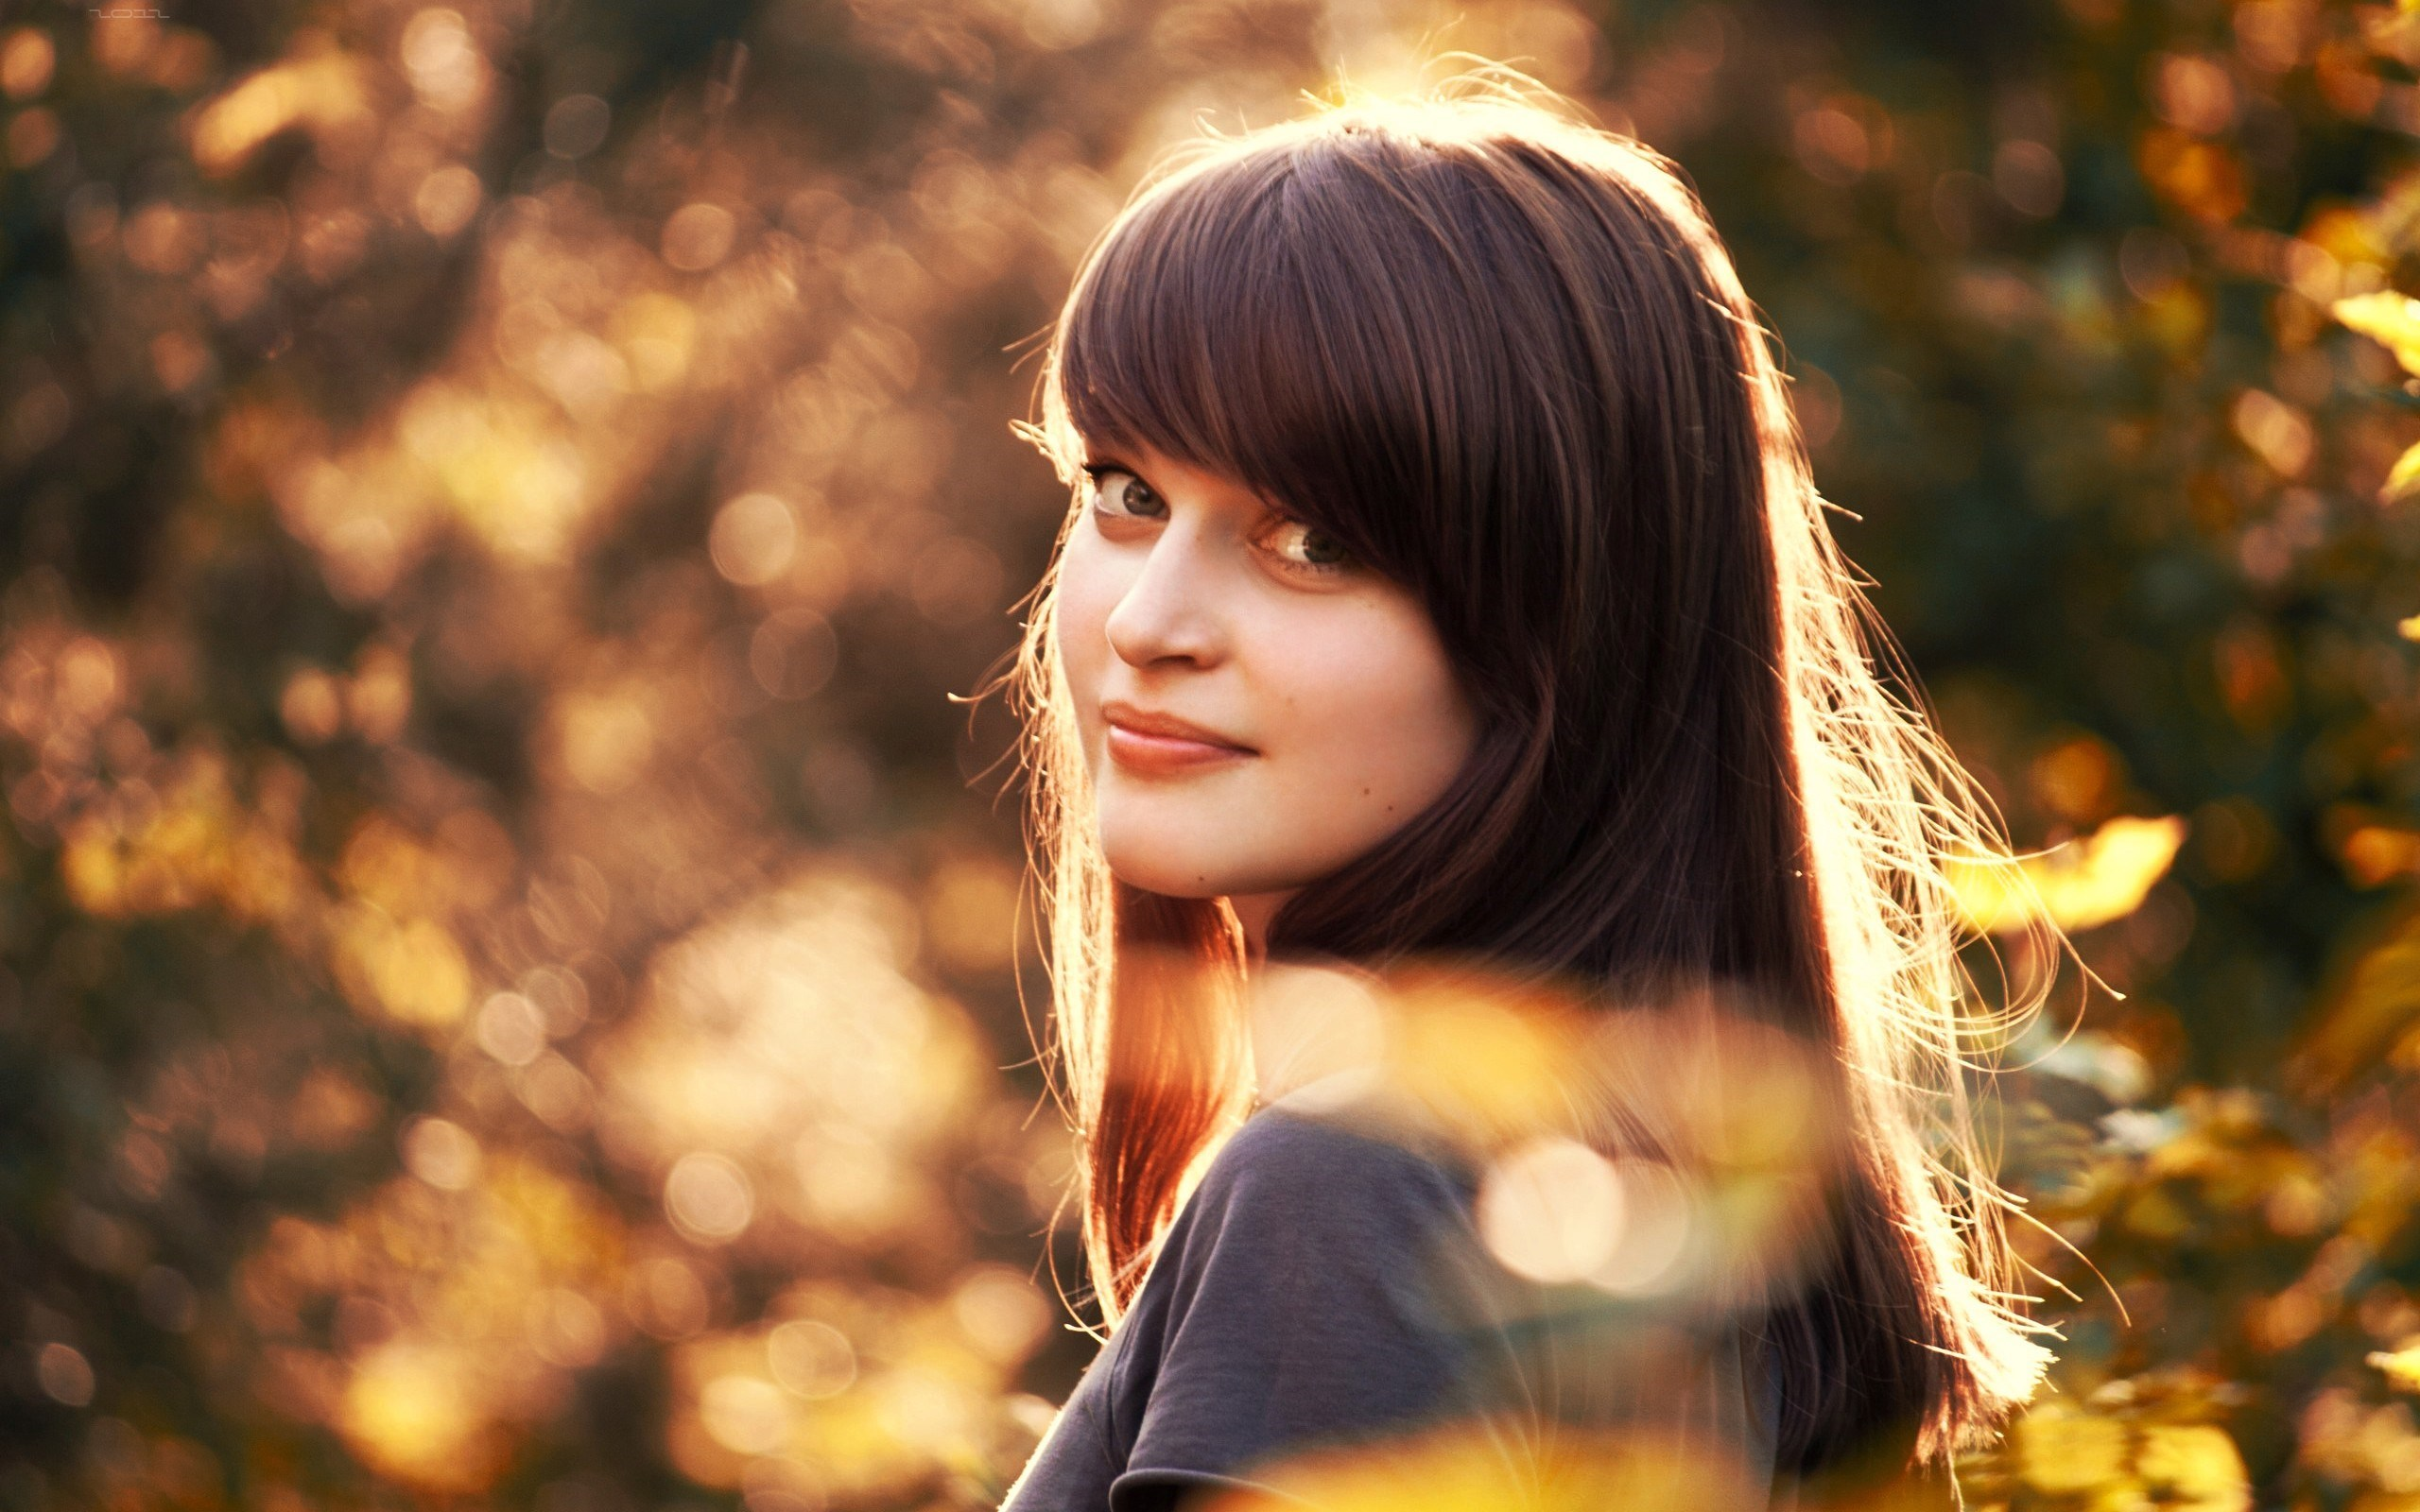 Awesome Girl Bokeh Wallpaper